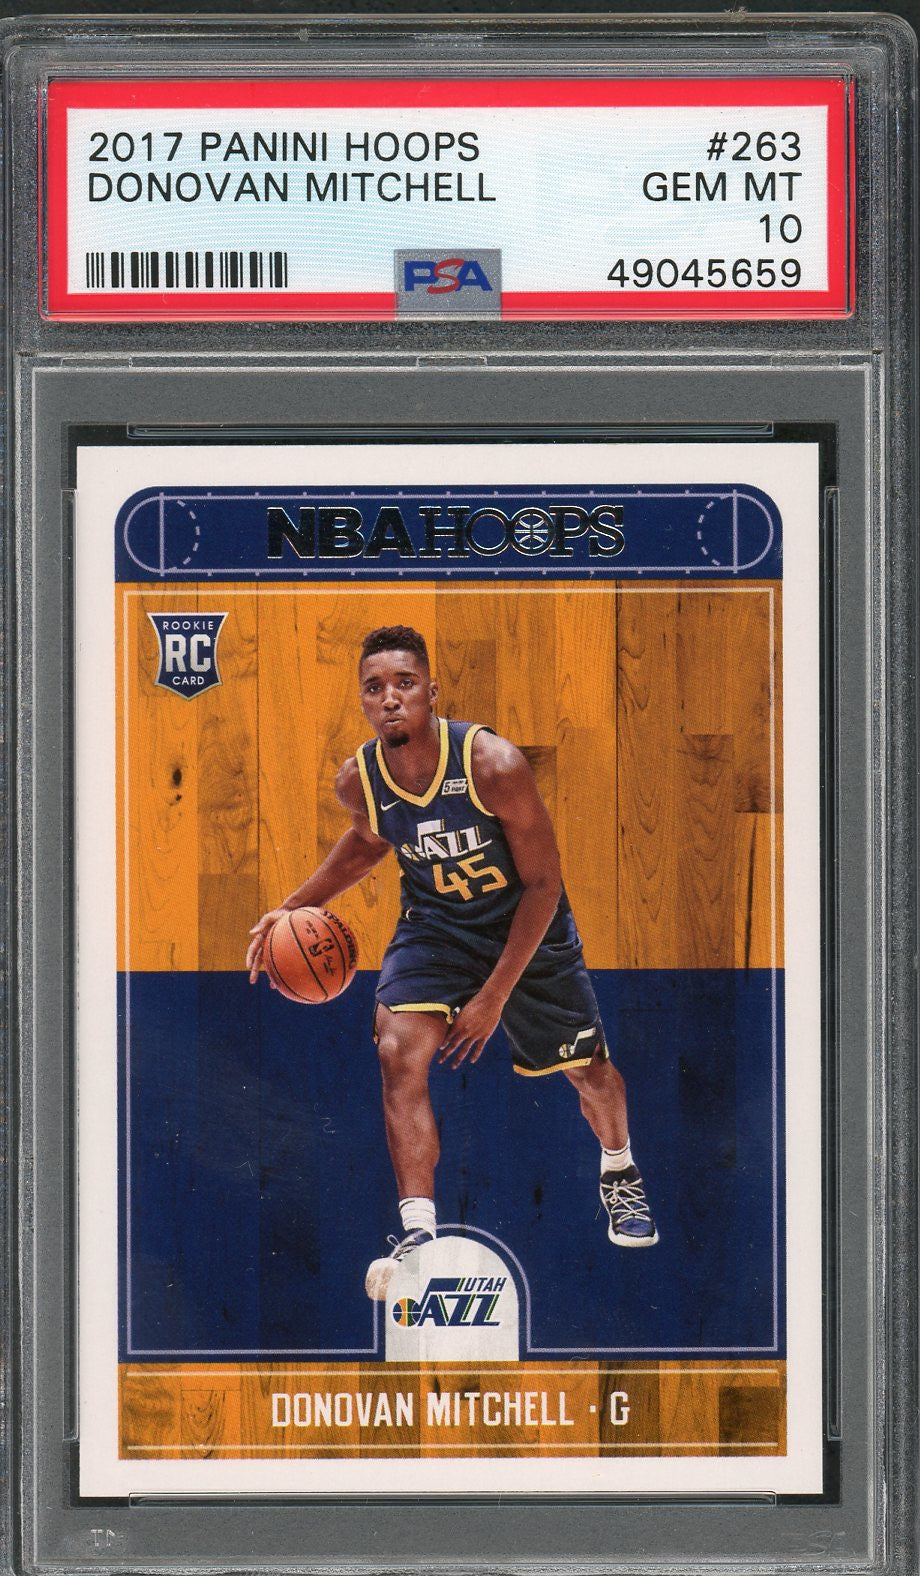 Donovan Mitchell Utah Jazz 2017 Panini Hoops Basketball Rookie Card RC #263 Graded PSA 10 GEM MINT-Powers Sports Memorabilia